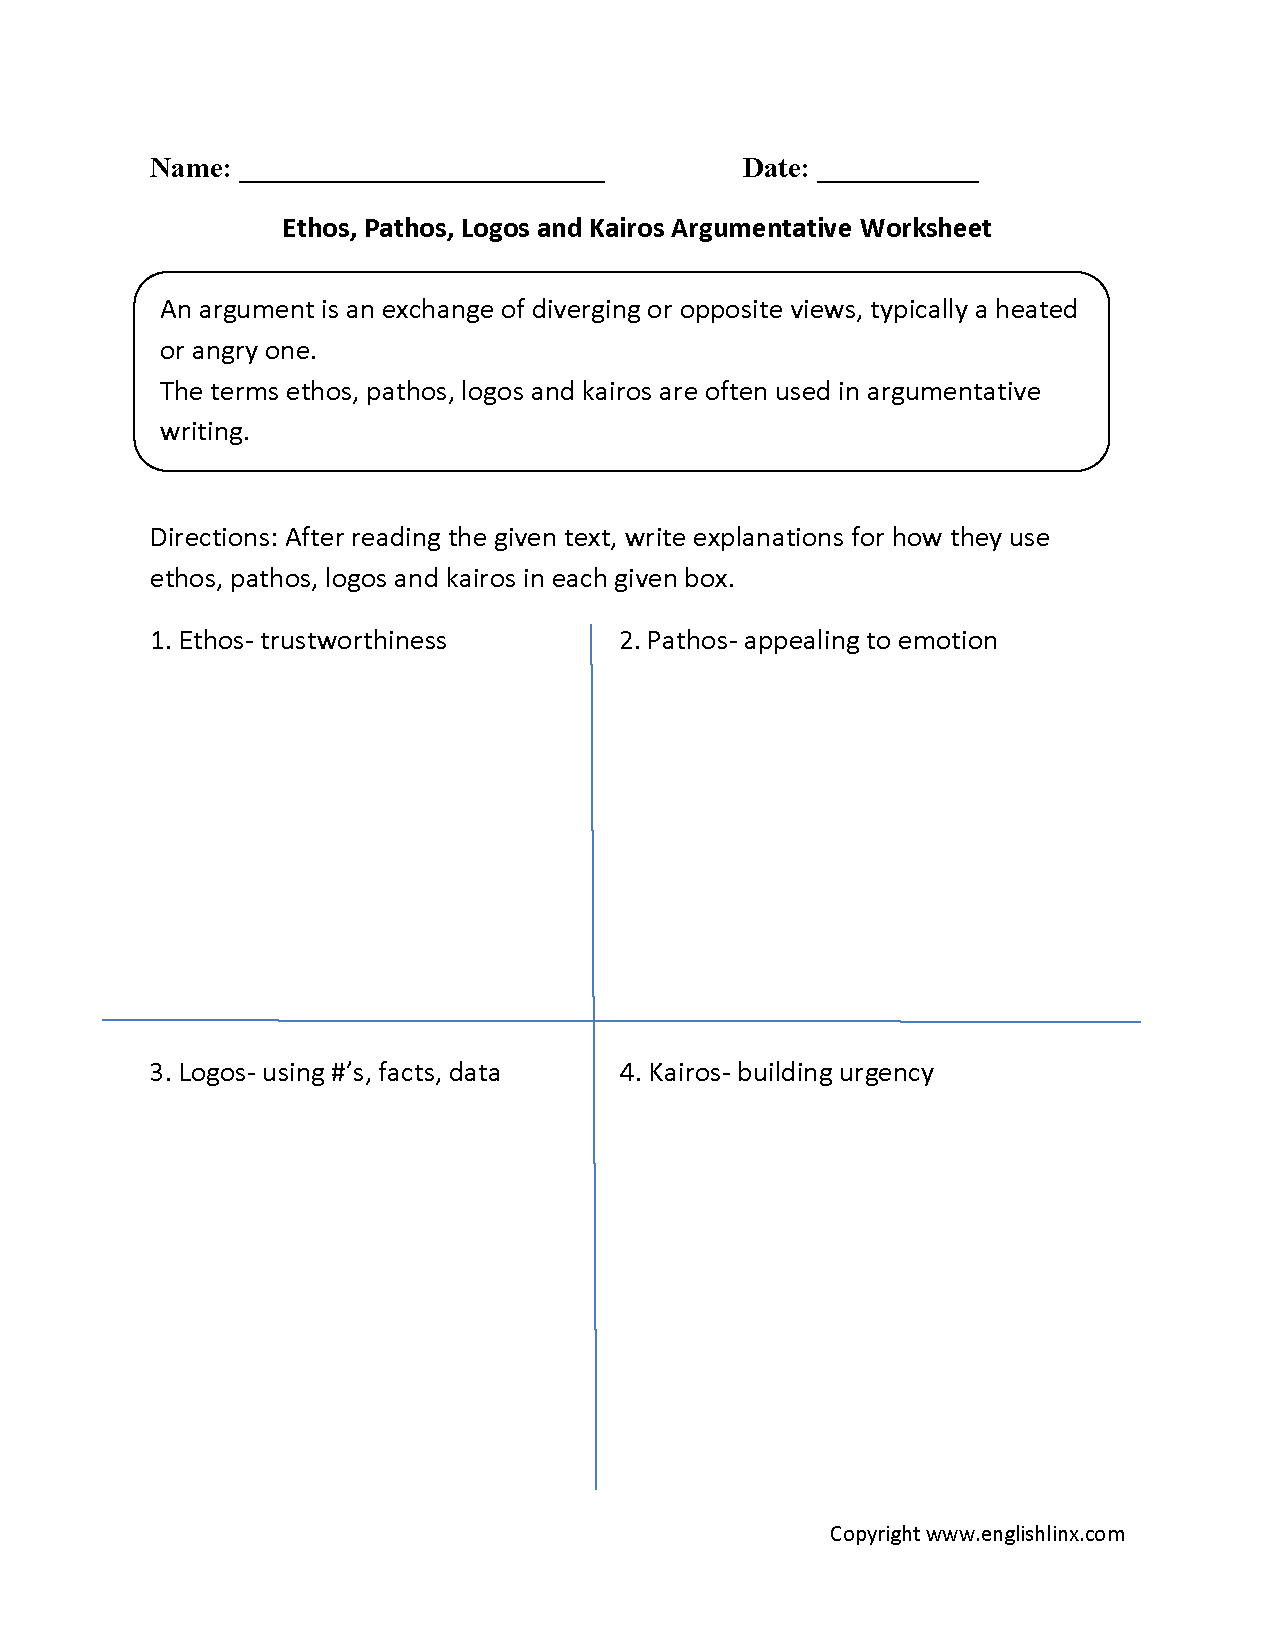 Ethos Pathos Logos Kairos Argumentative Worksheets